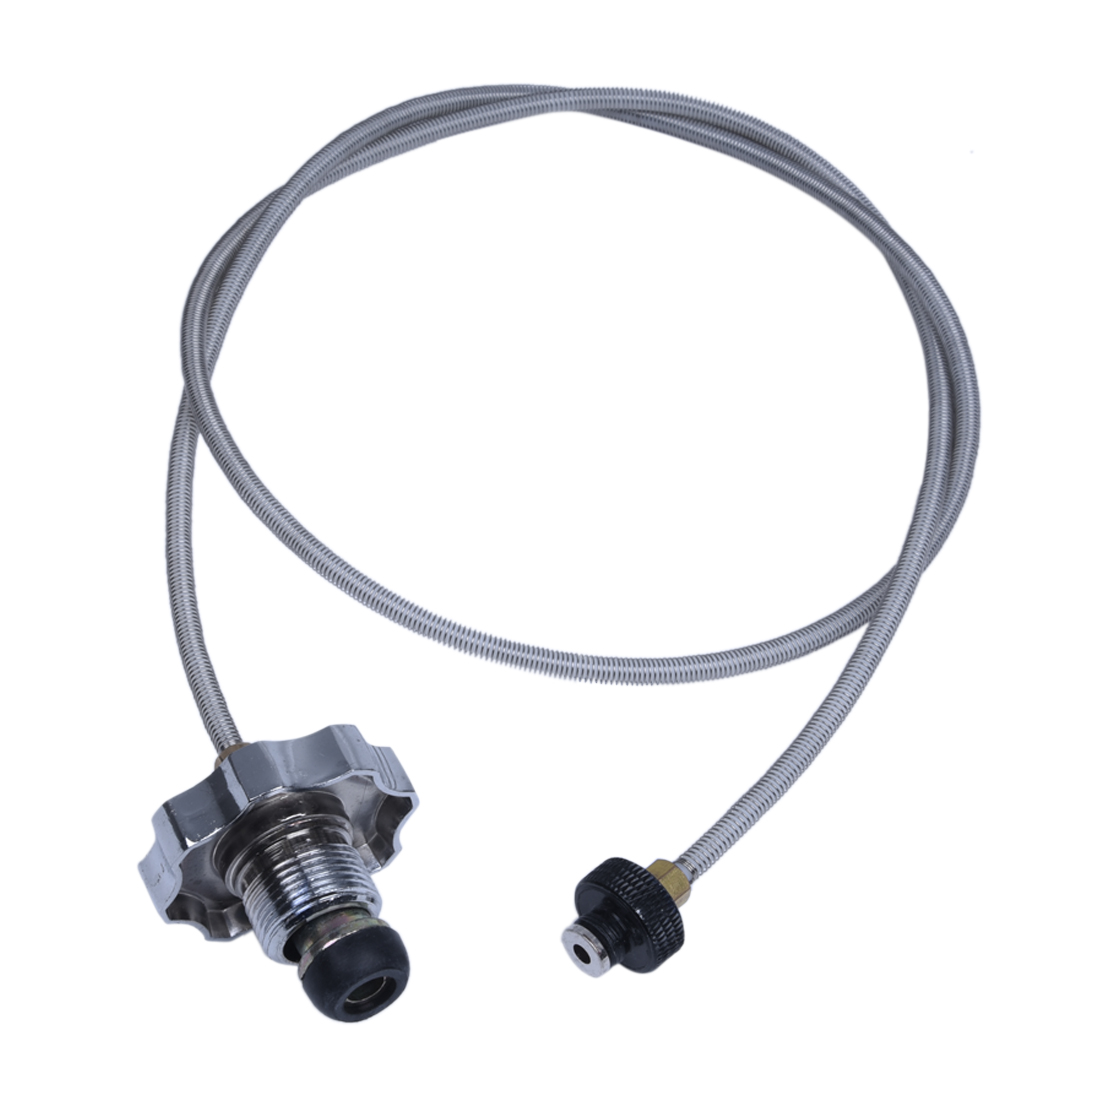 New Sale Outdoor Camping Stove Use Household LPG Cylinder Gas Tank Conversion Head Adapter 100CM Length 4MM Diameter